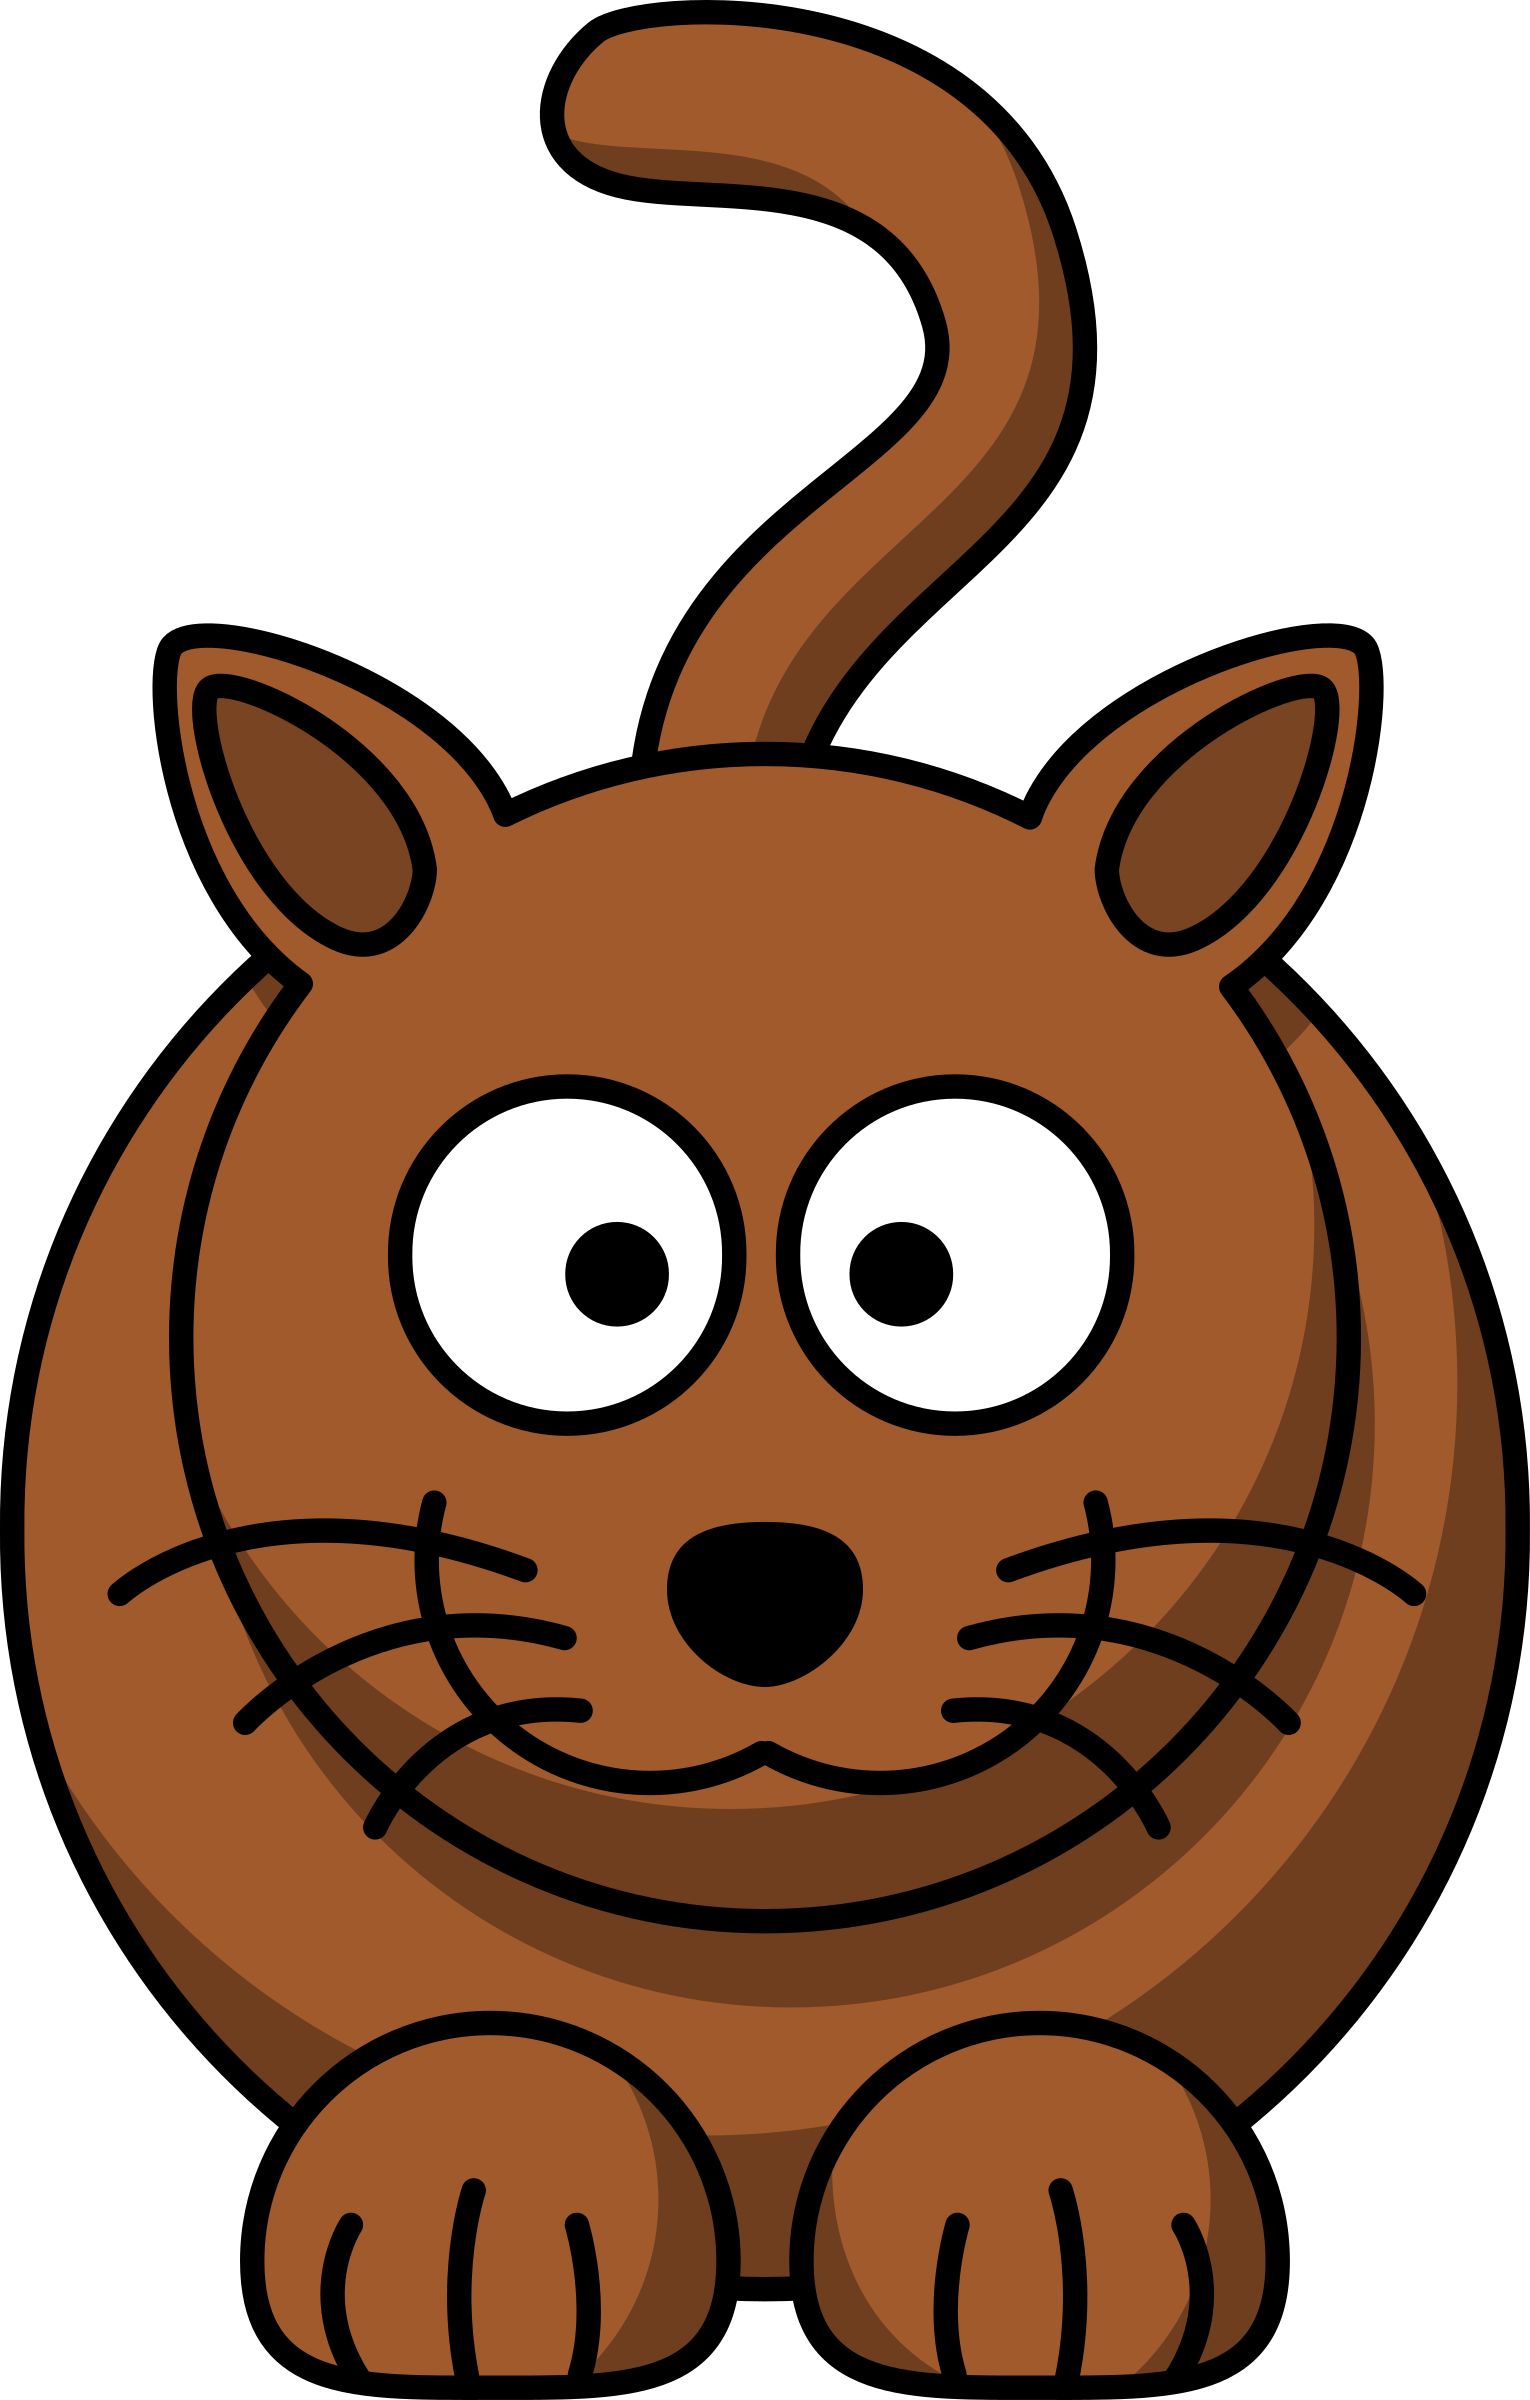 Cartoon cats png. Clipart cat big image